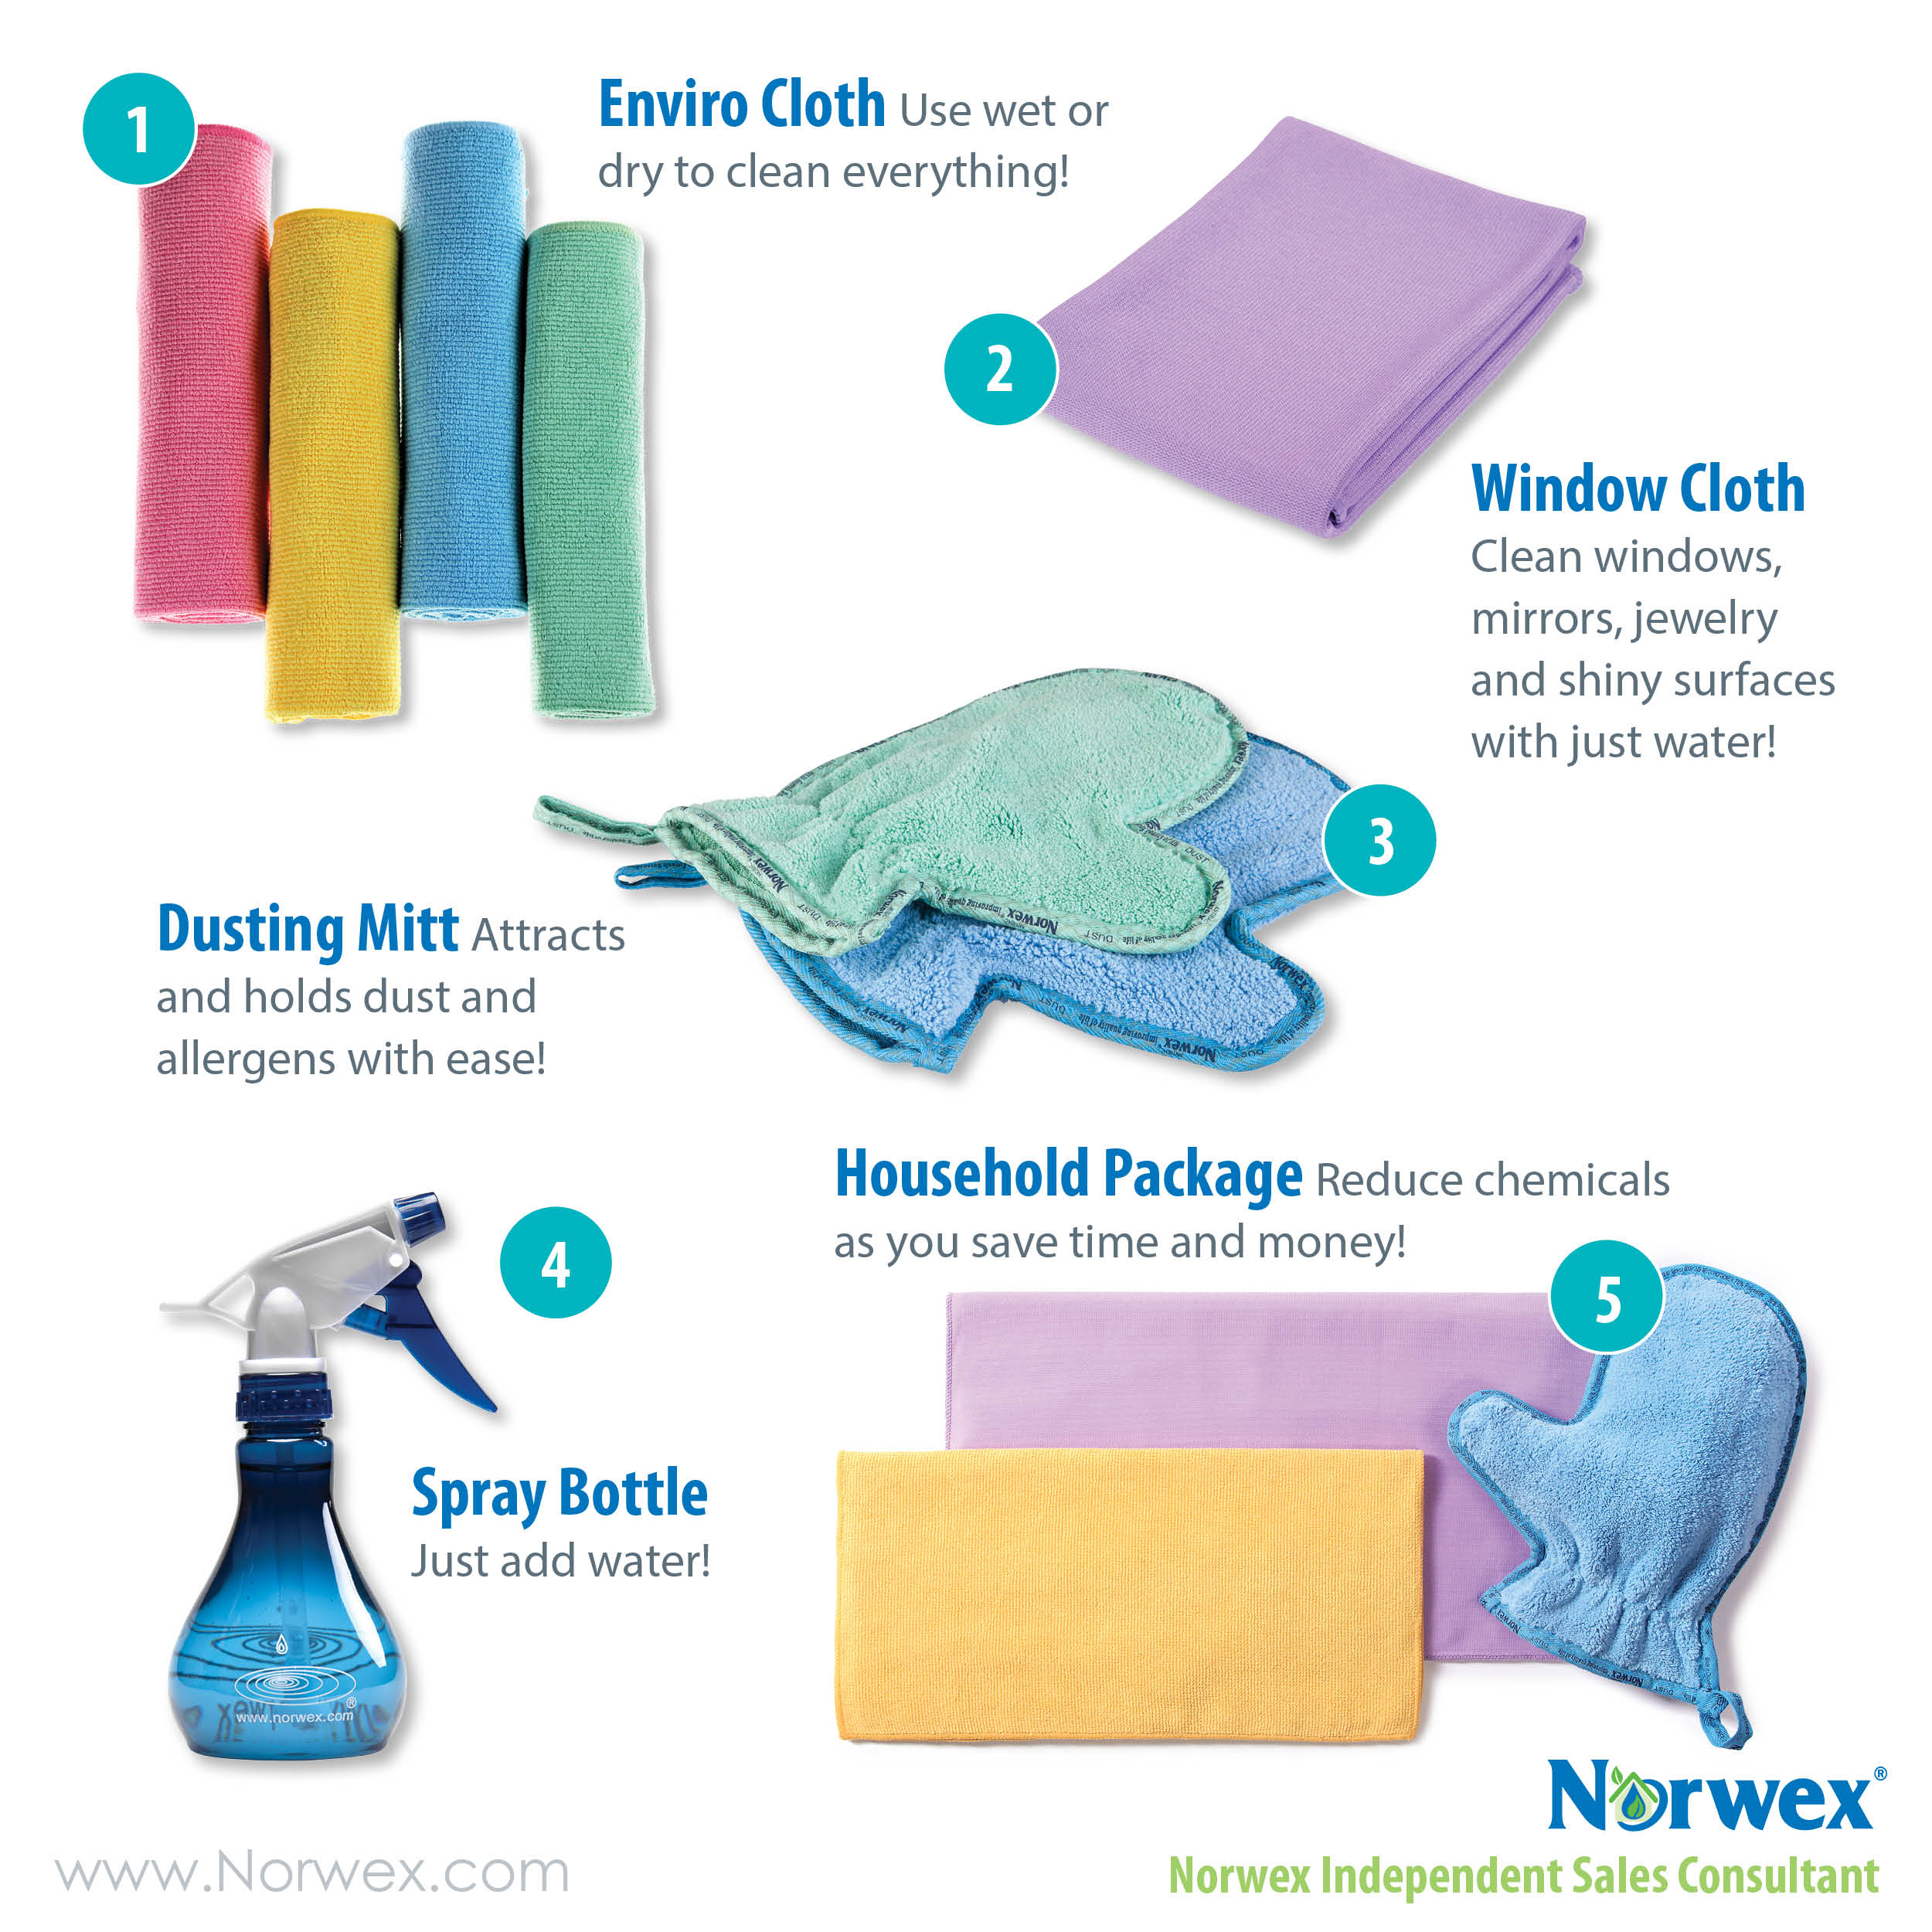 Norwex Cleaning Products: Clean Your Entire House With JUST